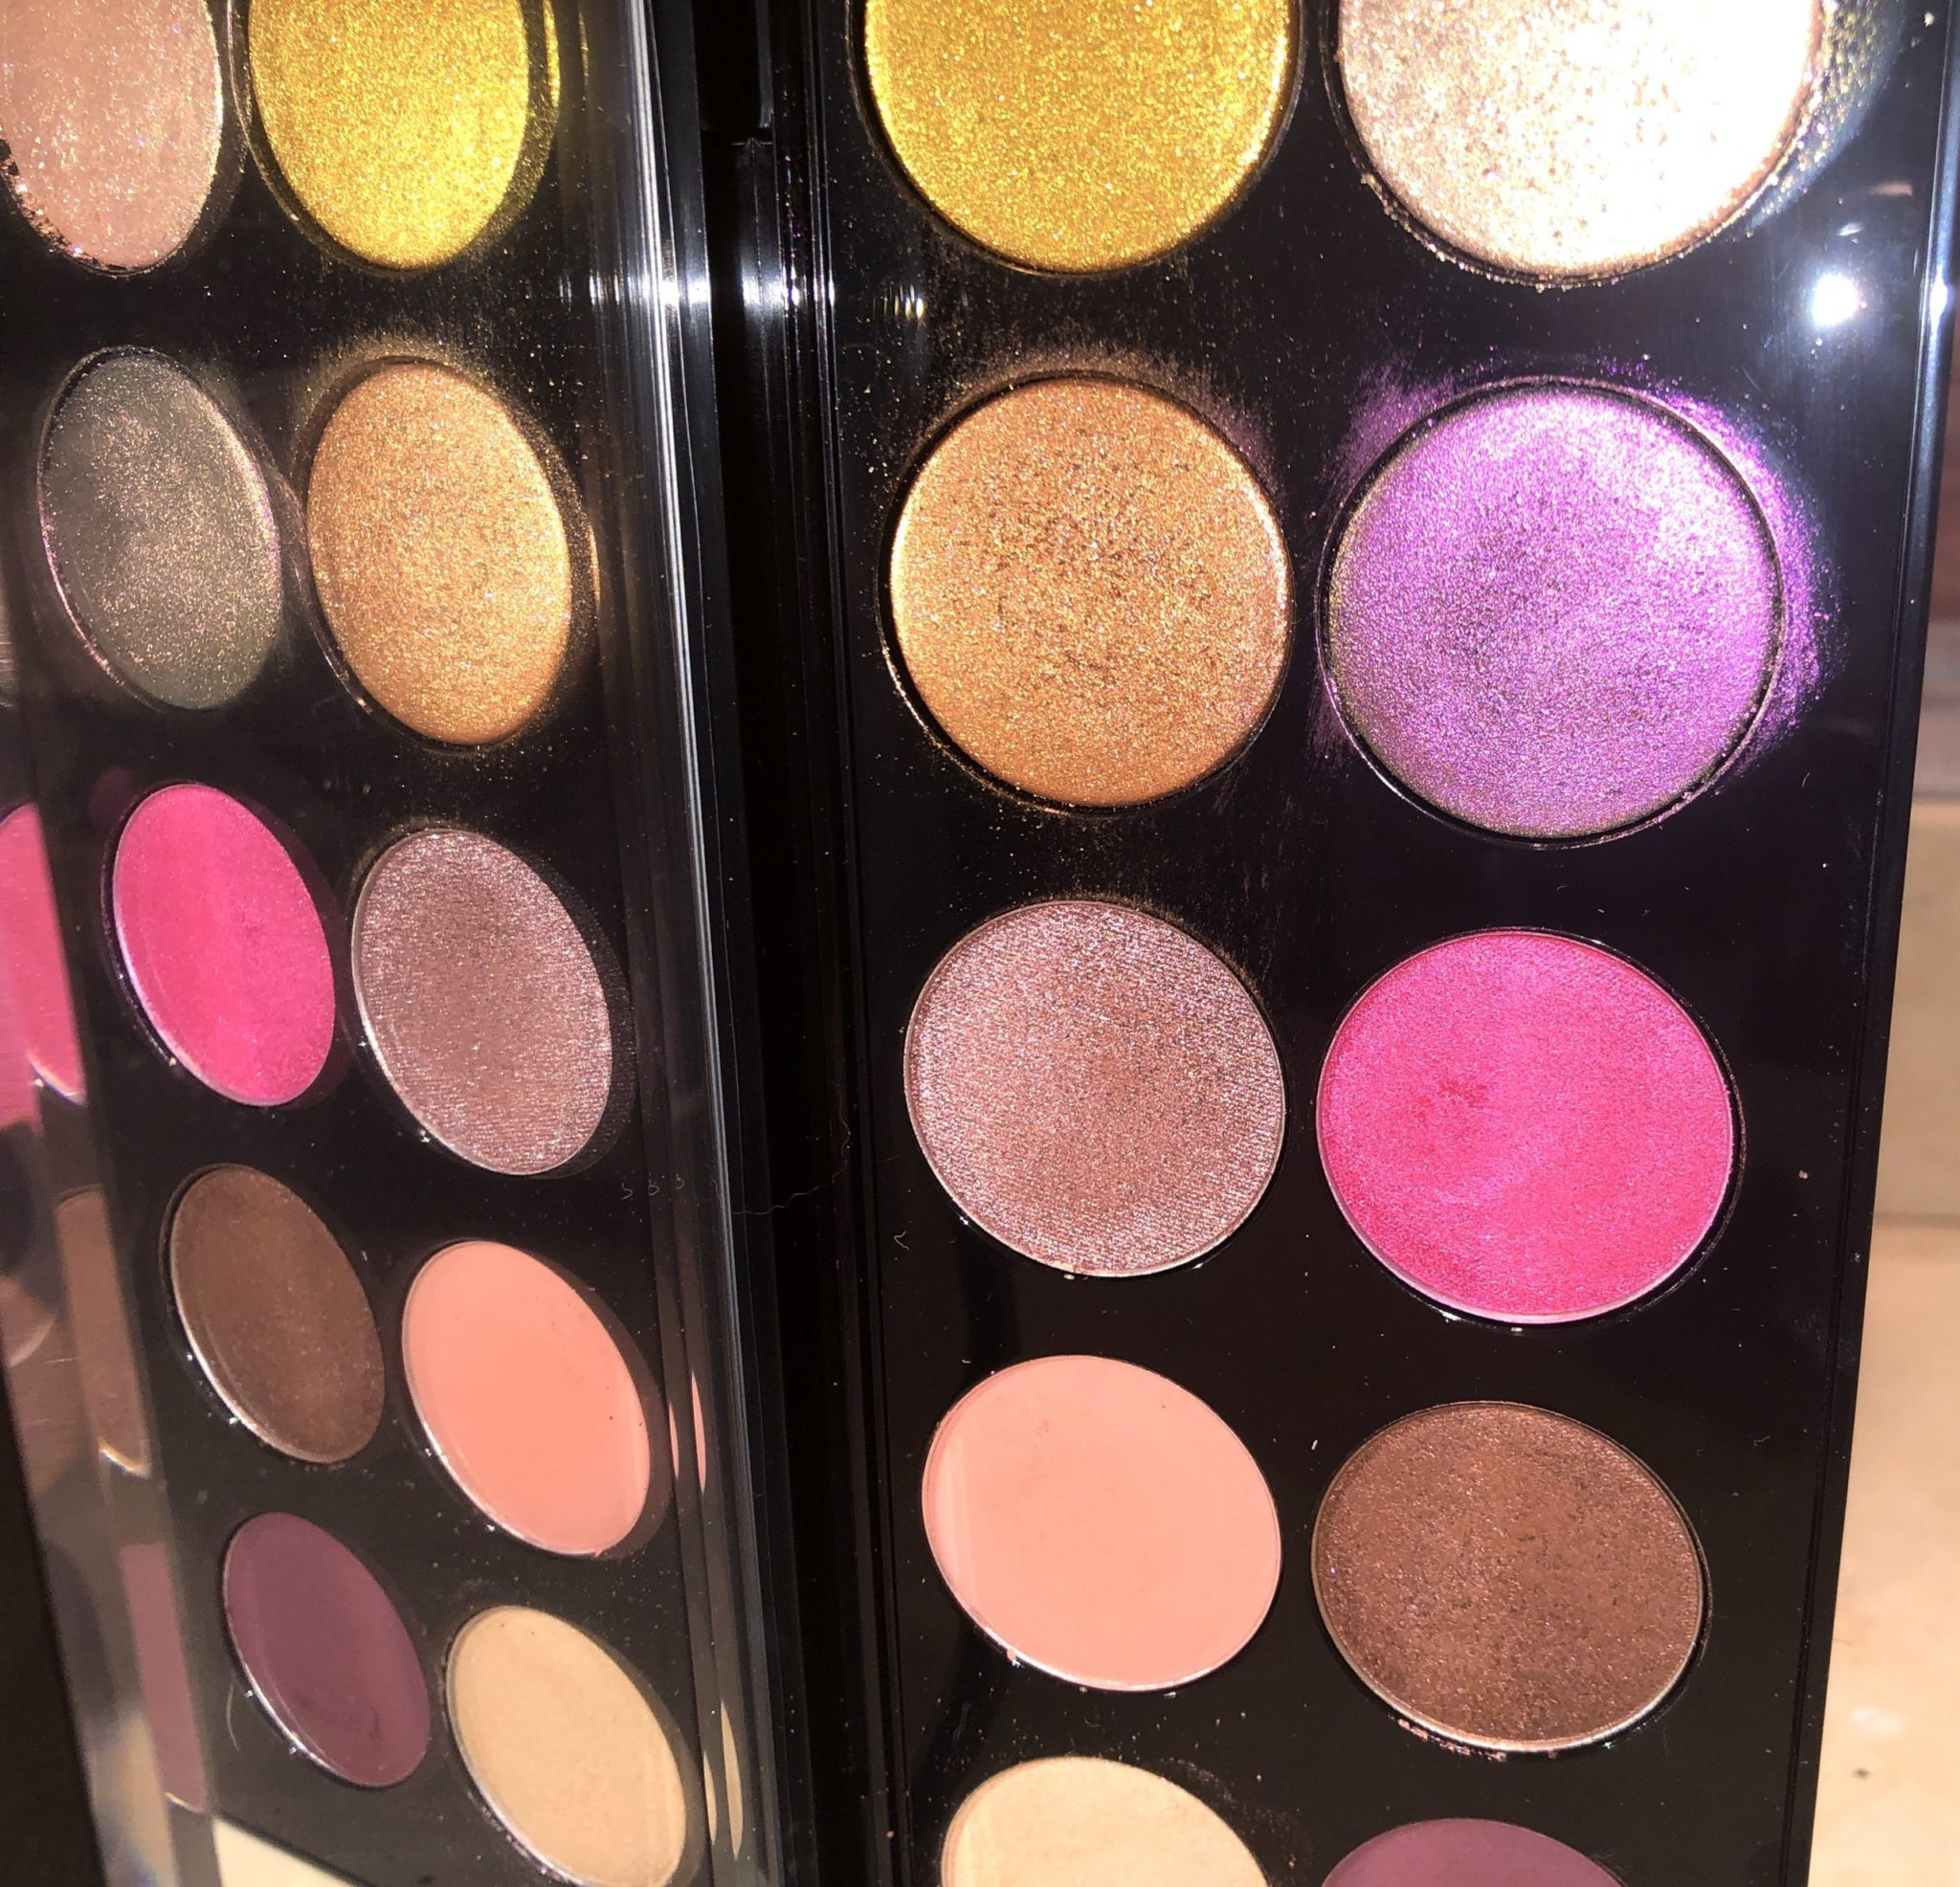 THE SECOND SHADE FROM THE TOP ALL THE WAY TO THE LEFT IS A GREEN MIRROR IMAGE OF THE FUCHSIA SHADE ALL THE WAY TO THE RIGHT